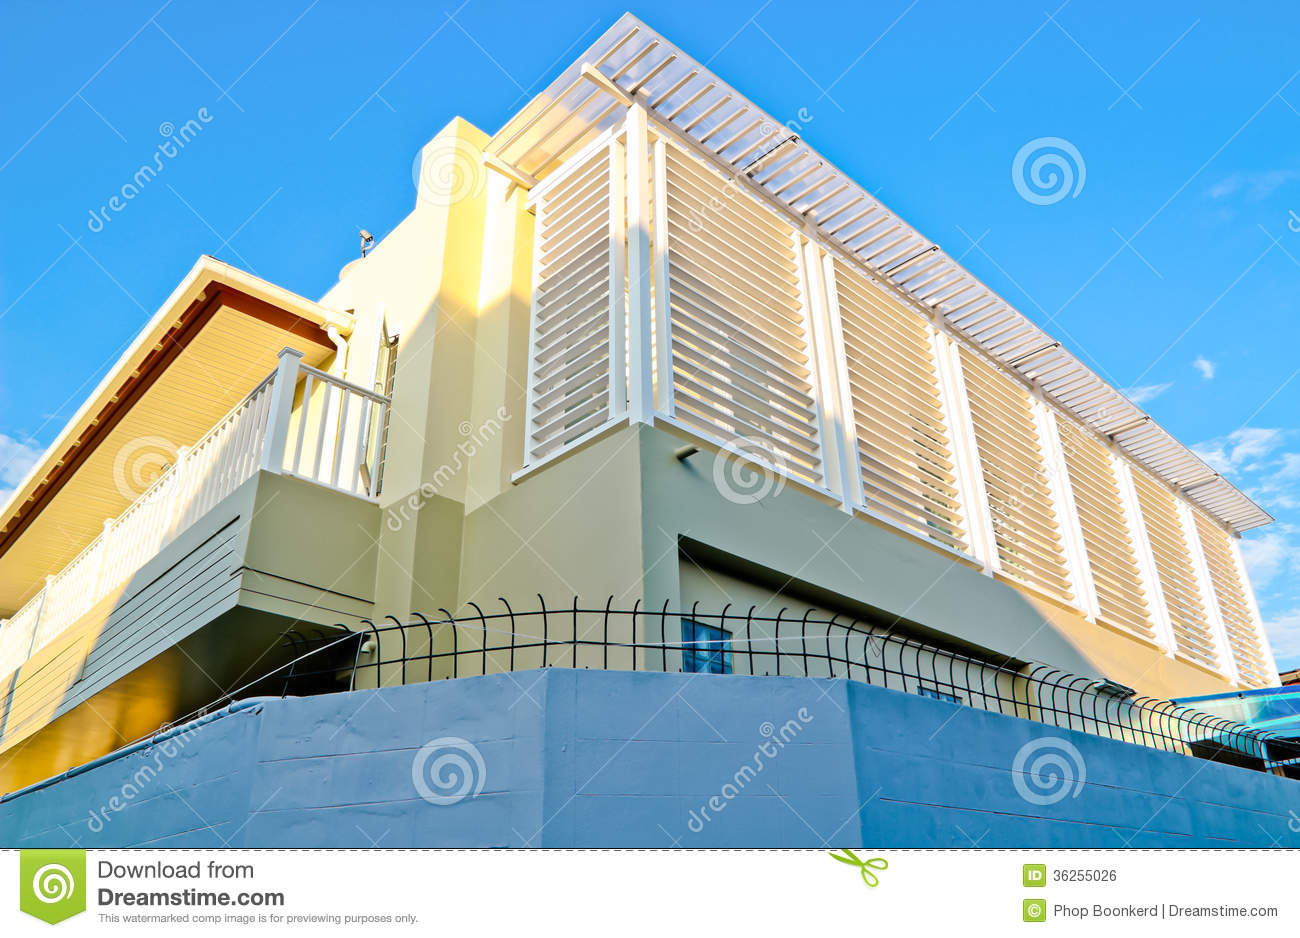 Modern House In hailand oyalty Free Stock Image - Image: 36255026 - ^